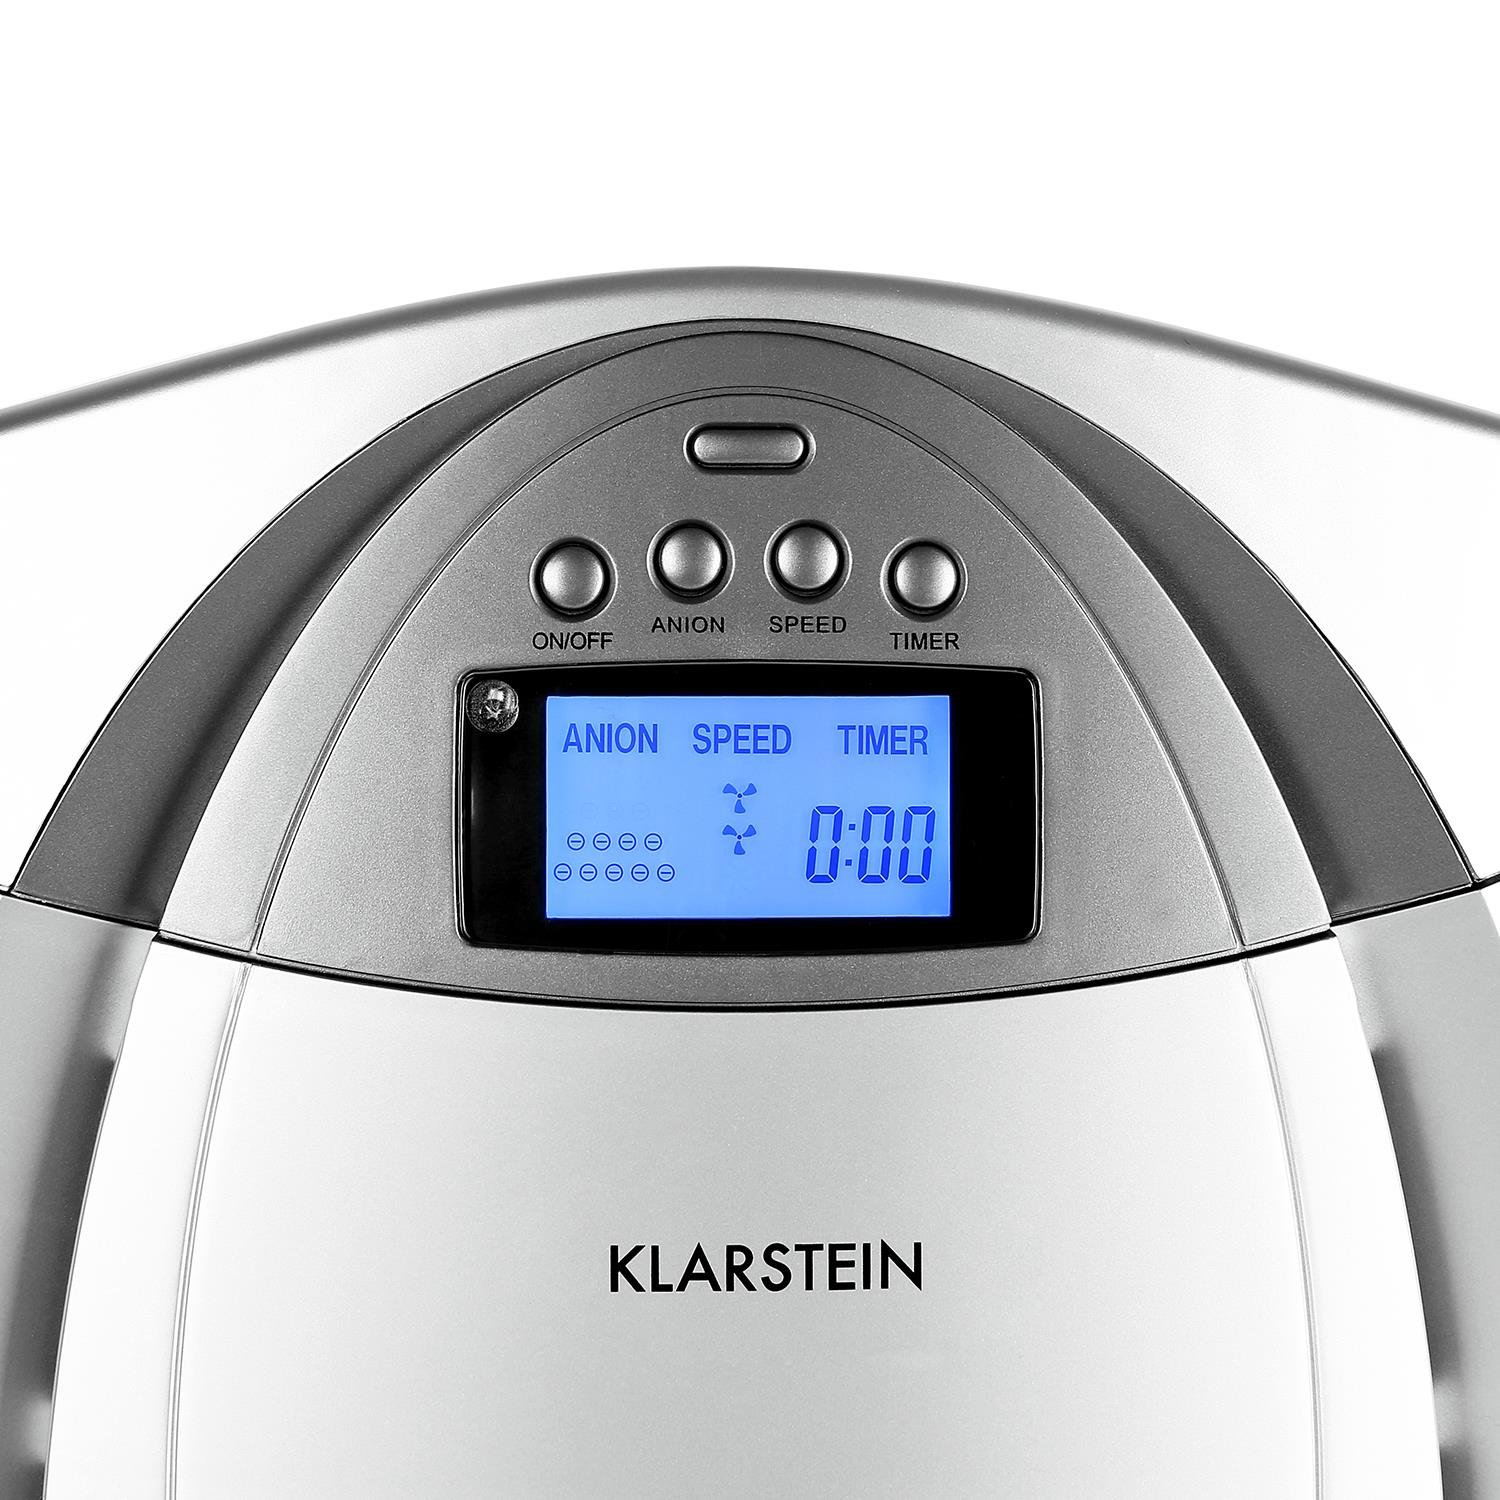 Klarstein Grenoble 4-in-1 Air Purifier /• Ioniser /• Filter /• Remote Control /• 3 Speed /• 12-Hour Timer /• Replaceable Filter /• up to 40m/²roooms /• Low Noise /• LCD Display /• Silver